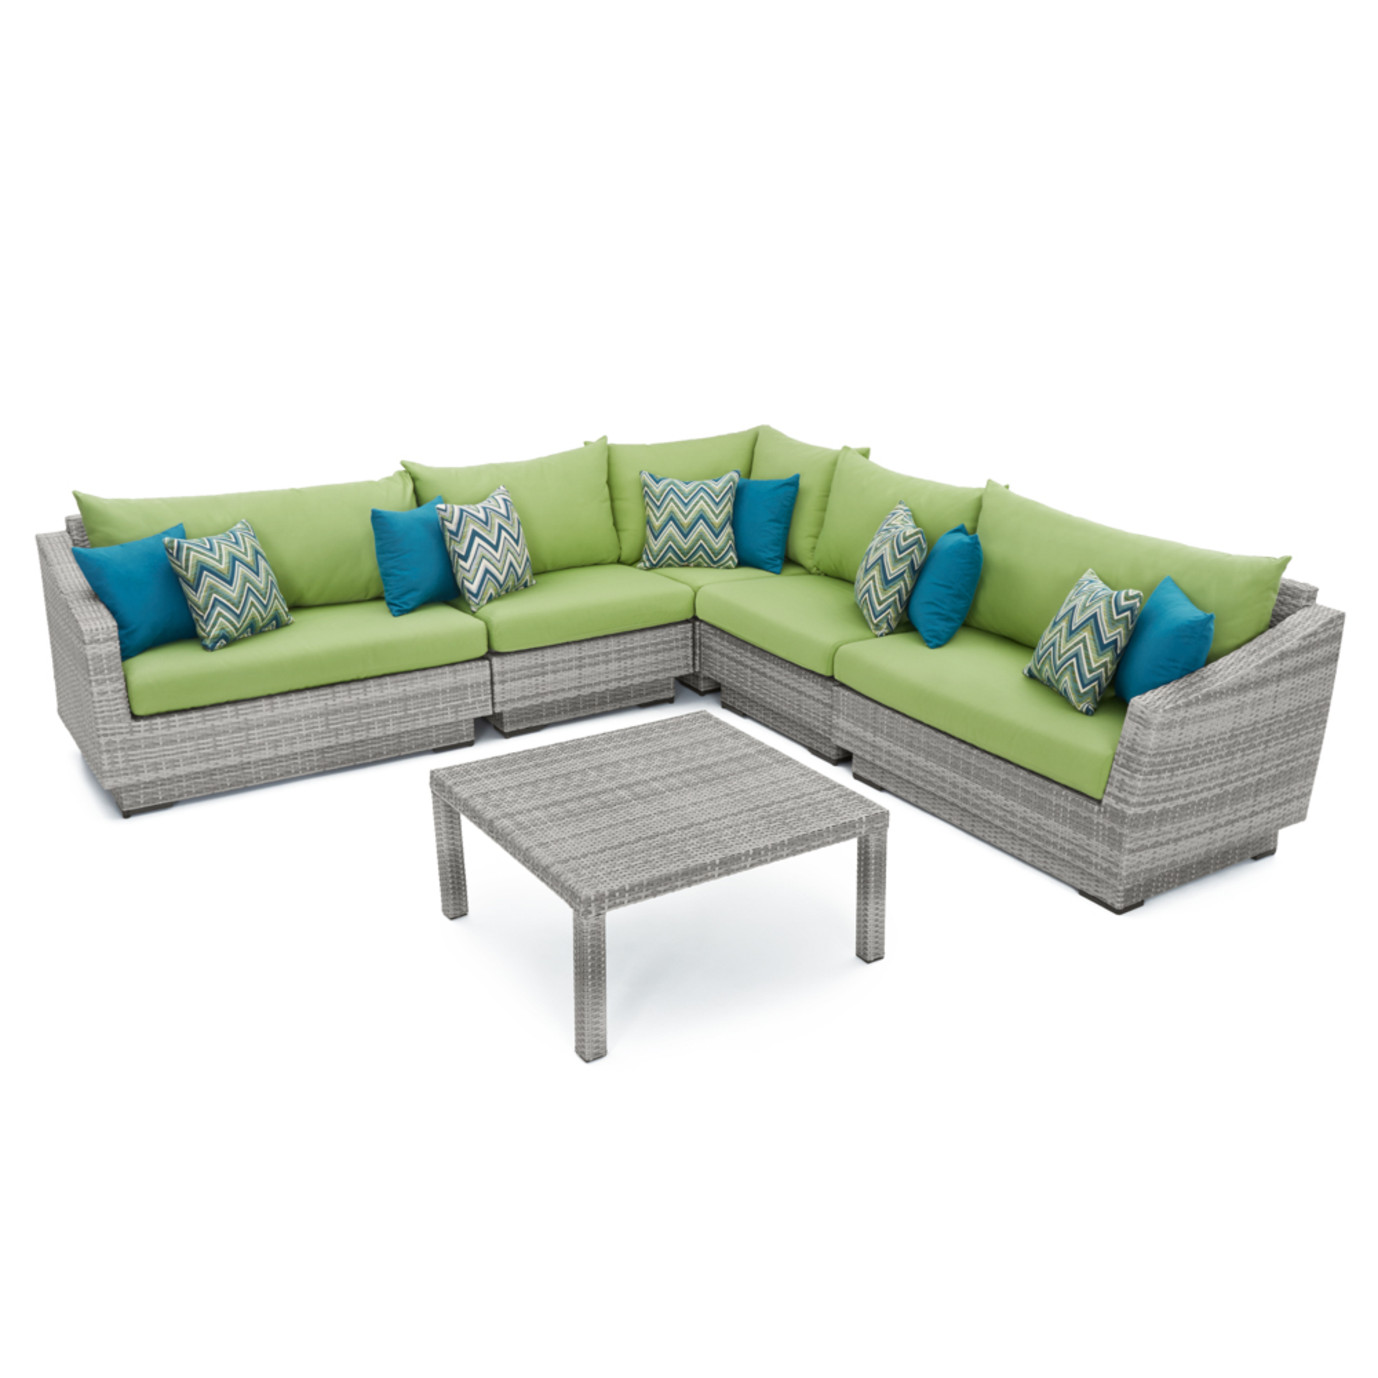 Cannes™ 6pc Sectional & Table - Ginkgo Green